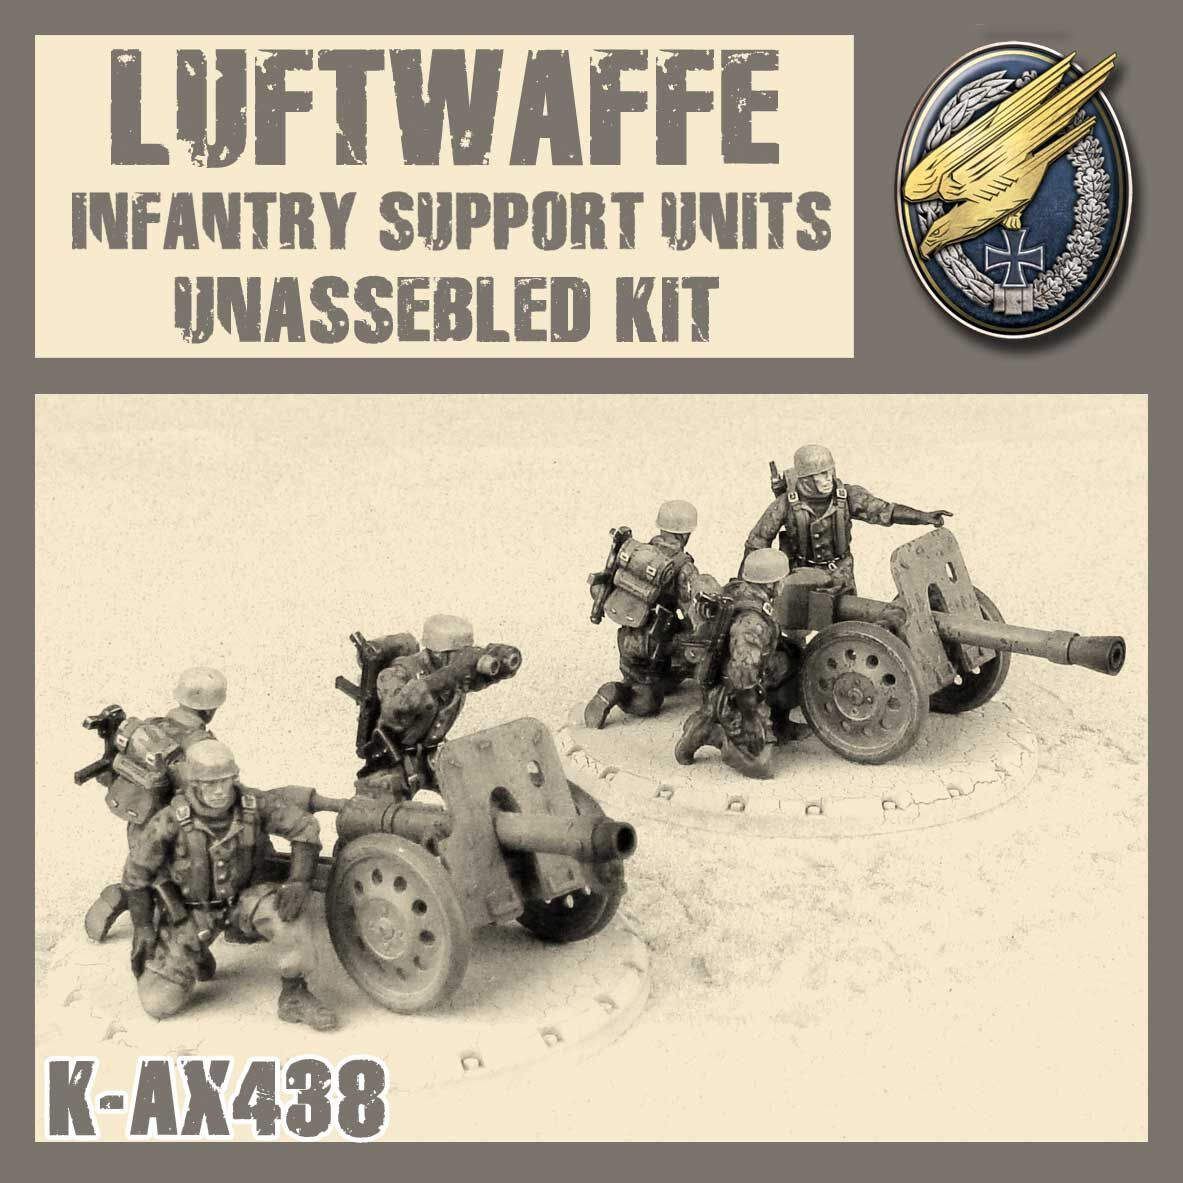 Luftwaffe Support Units - Kit